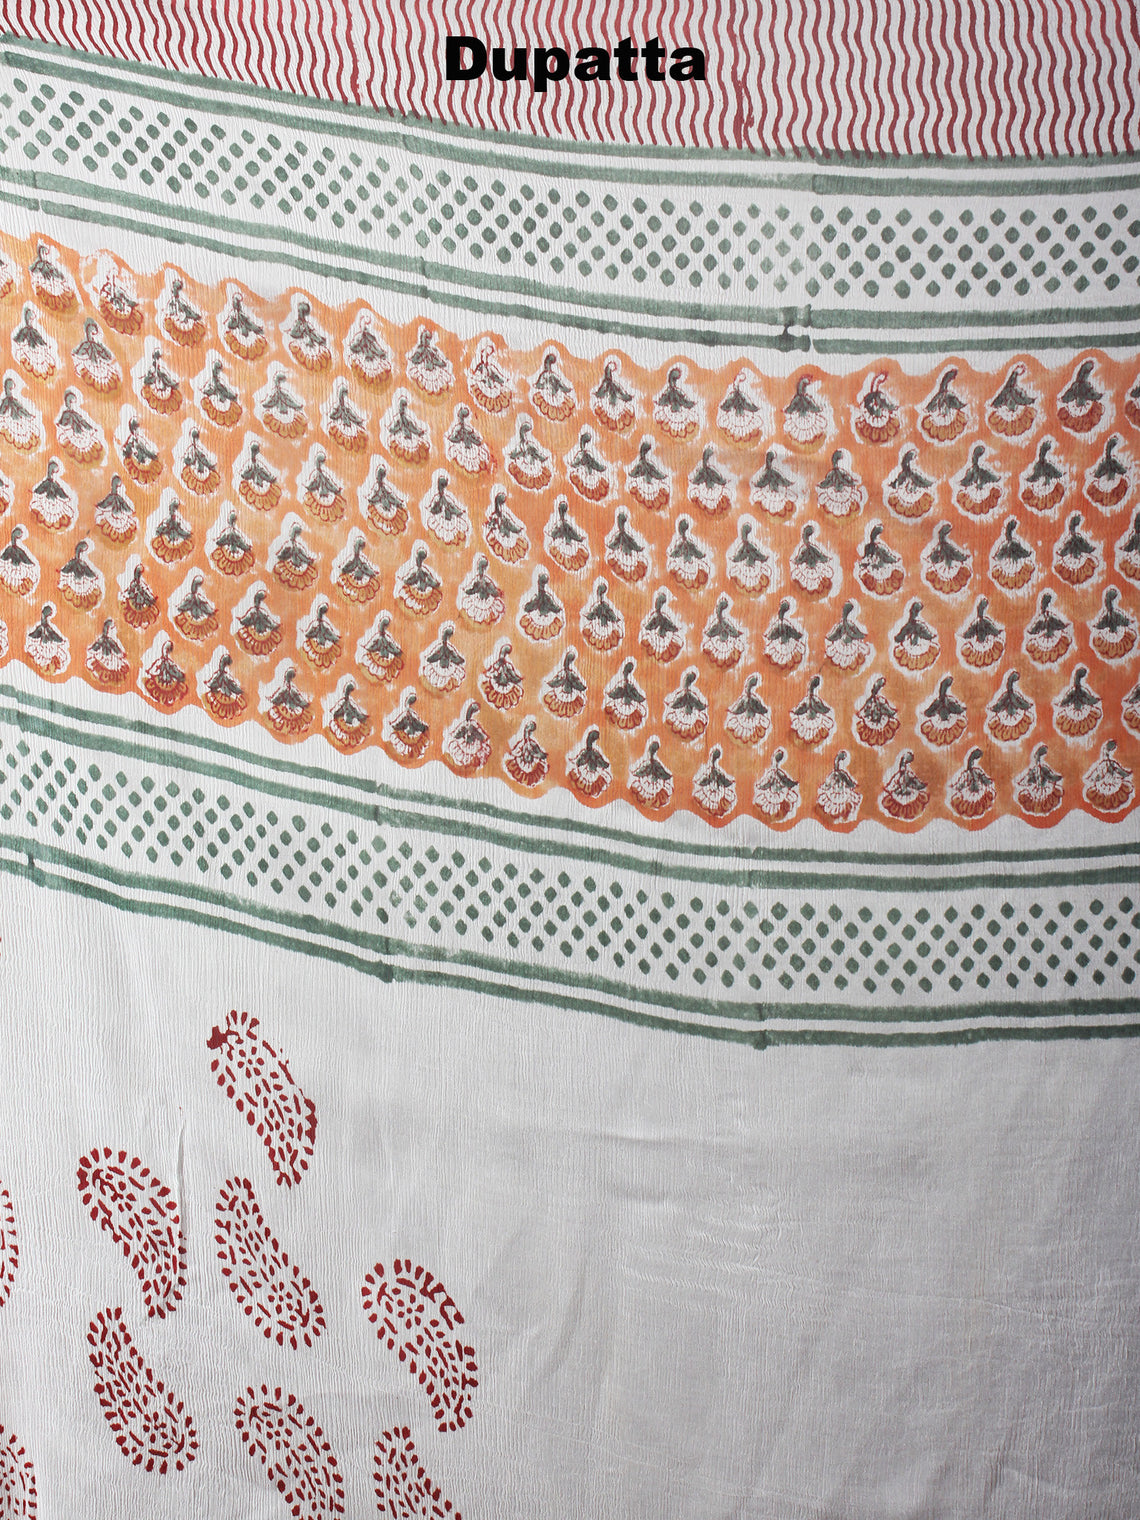 Orange White Grey Hand Block Printed Cotton Suit-Salwar Fabric With Chiffon Dupatta - S1628042